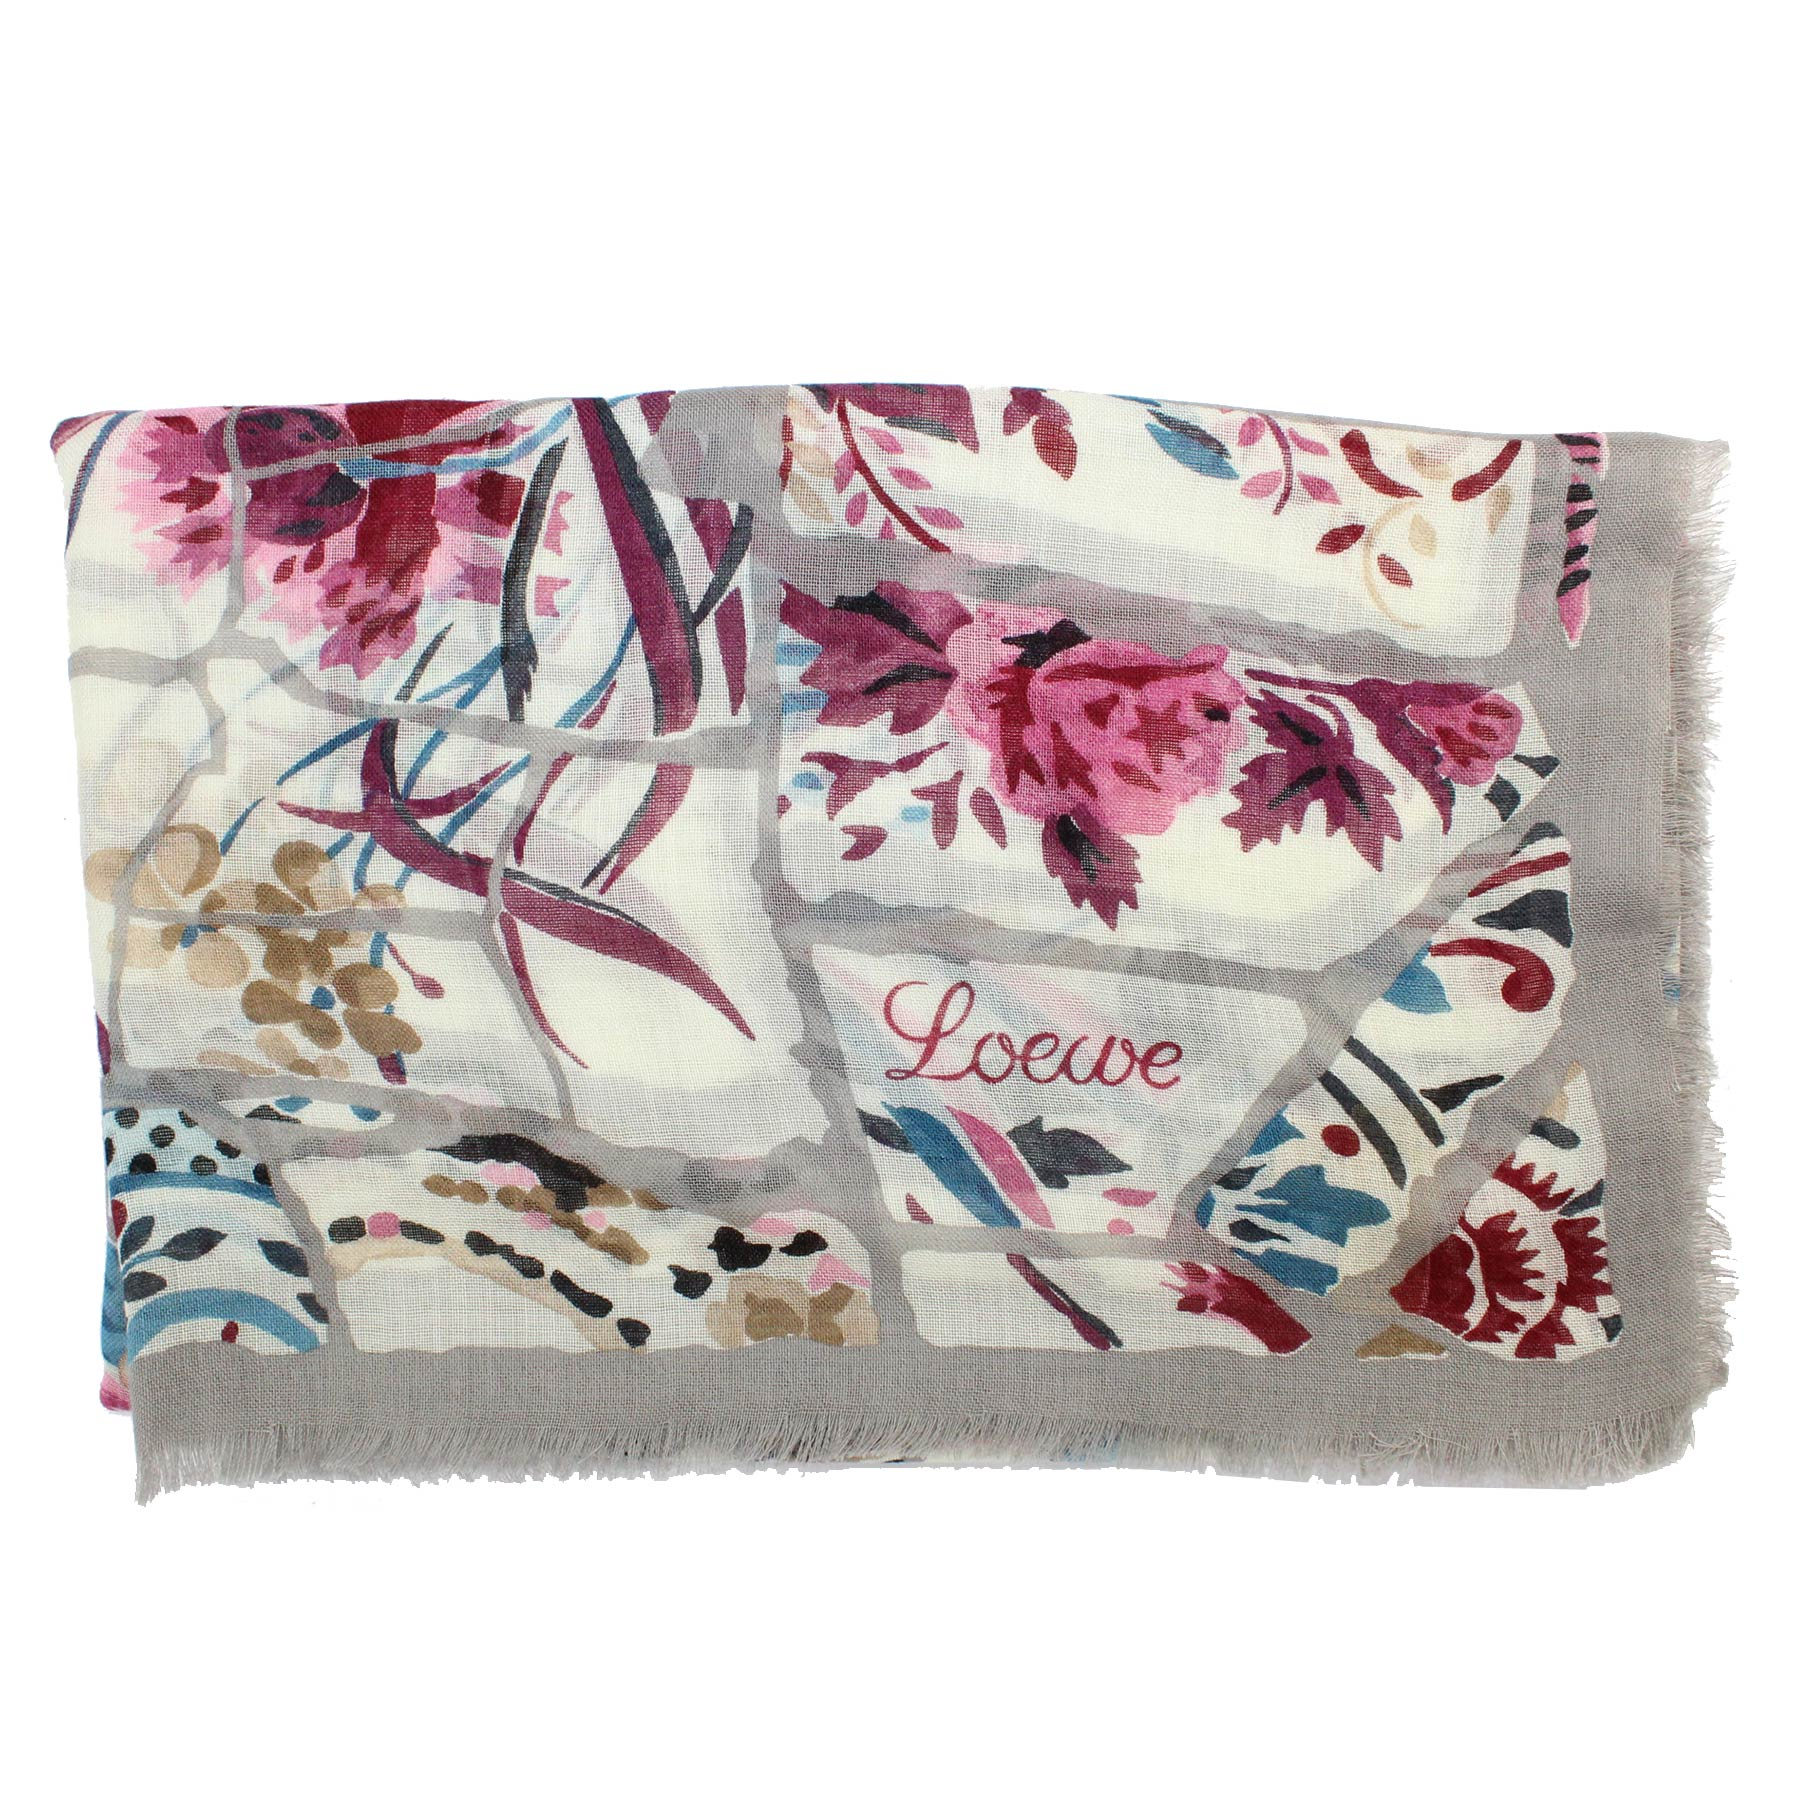 Loewe Scarf White Gray Pink Blue Floral